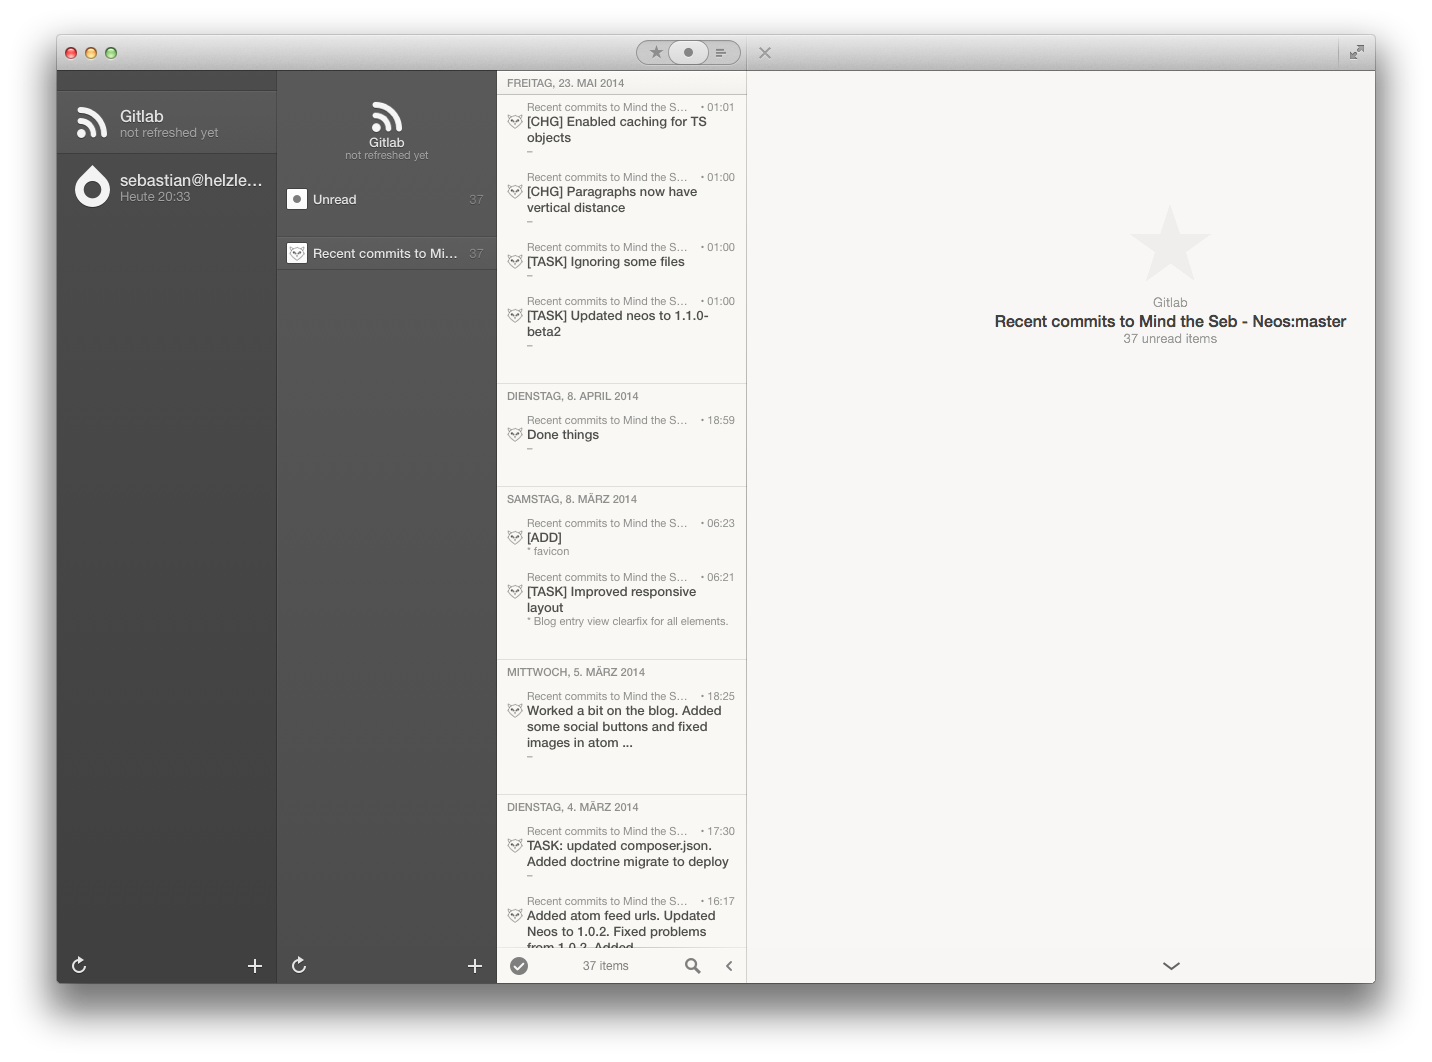 Interface of the app reeder